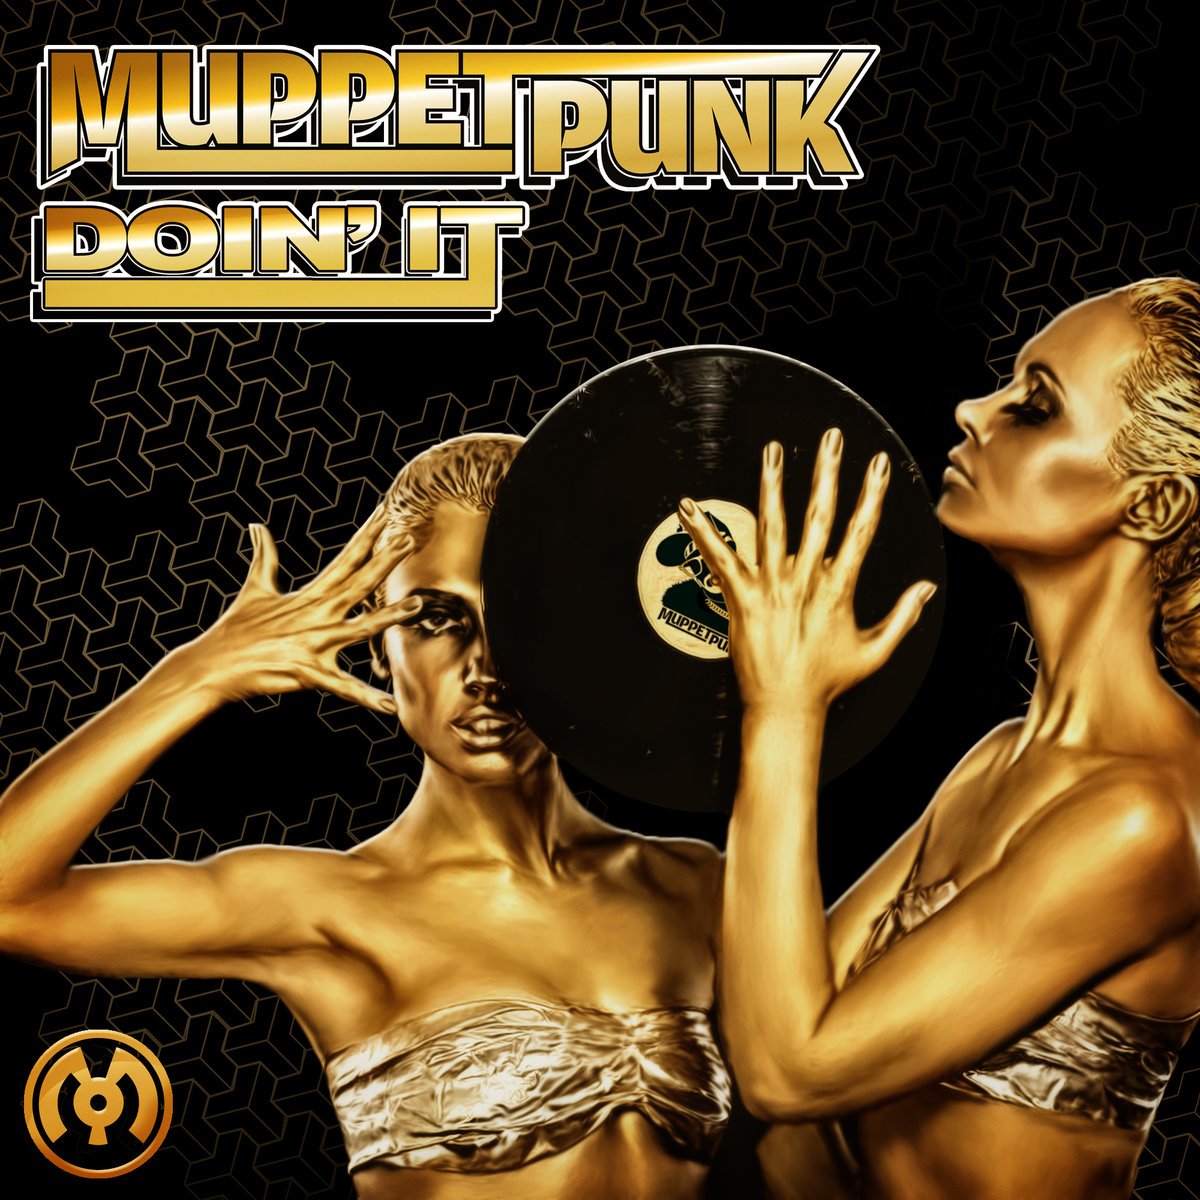 Muppet Punk - Doin' It @ 'Doin' It' album (electronic, dubstep)